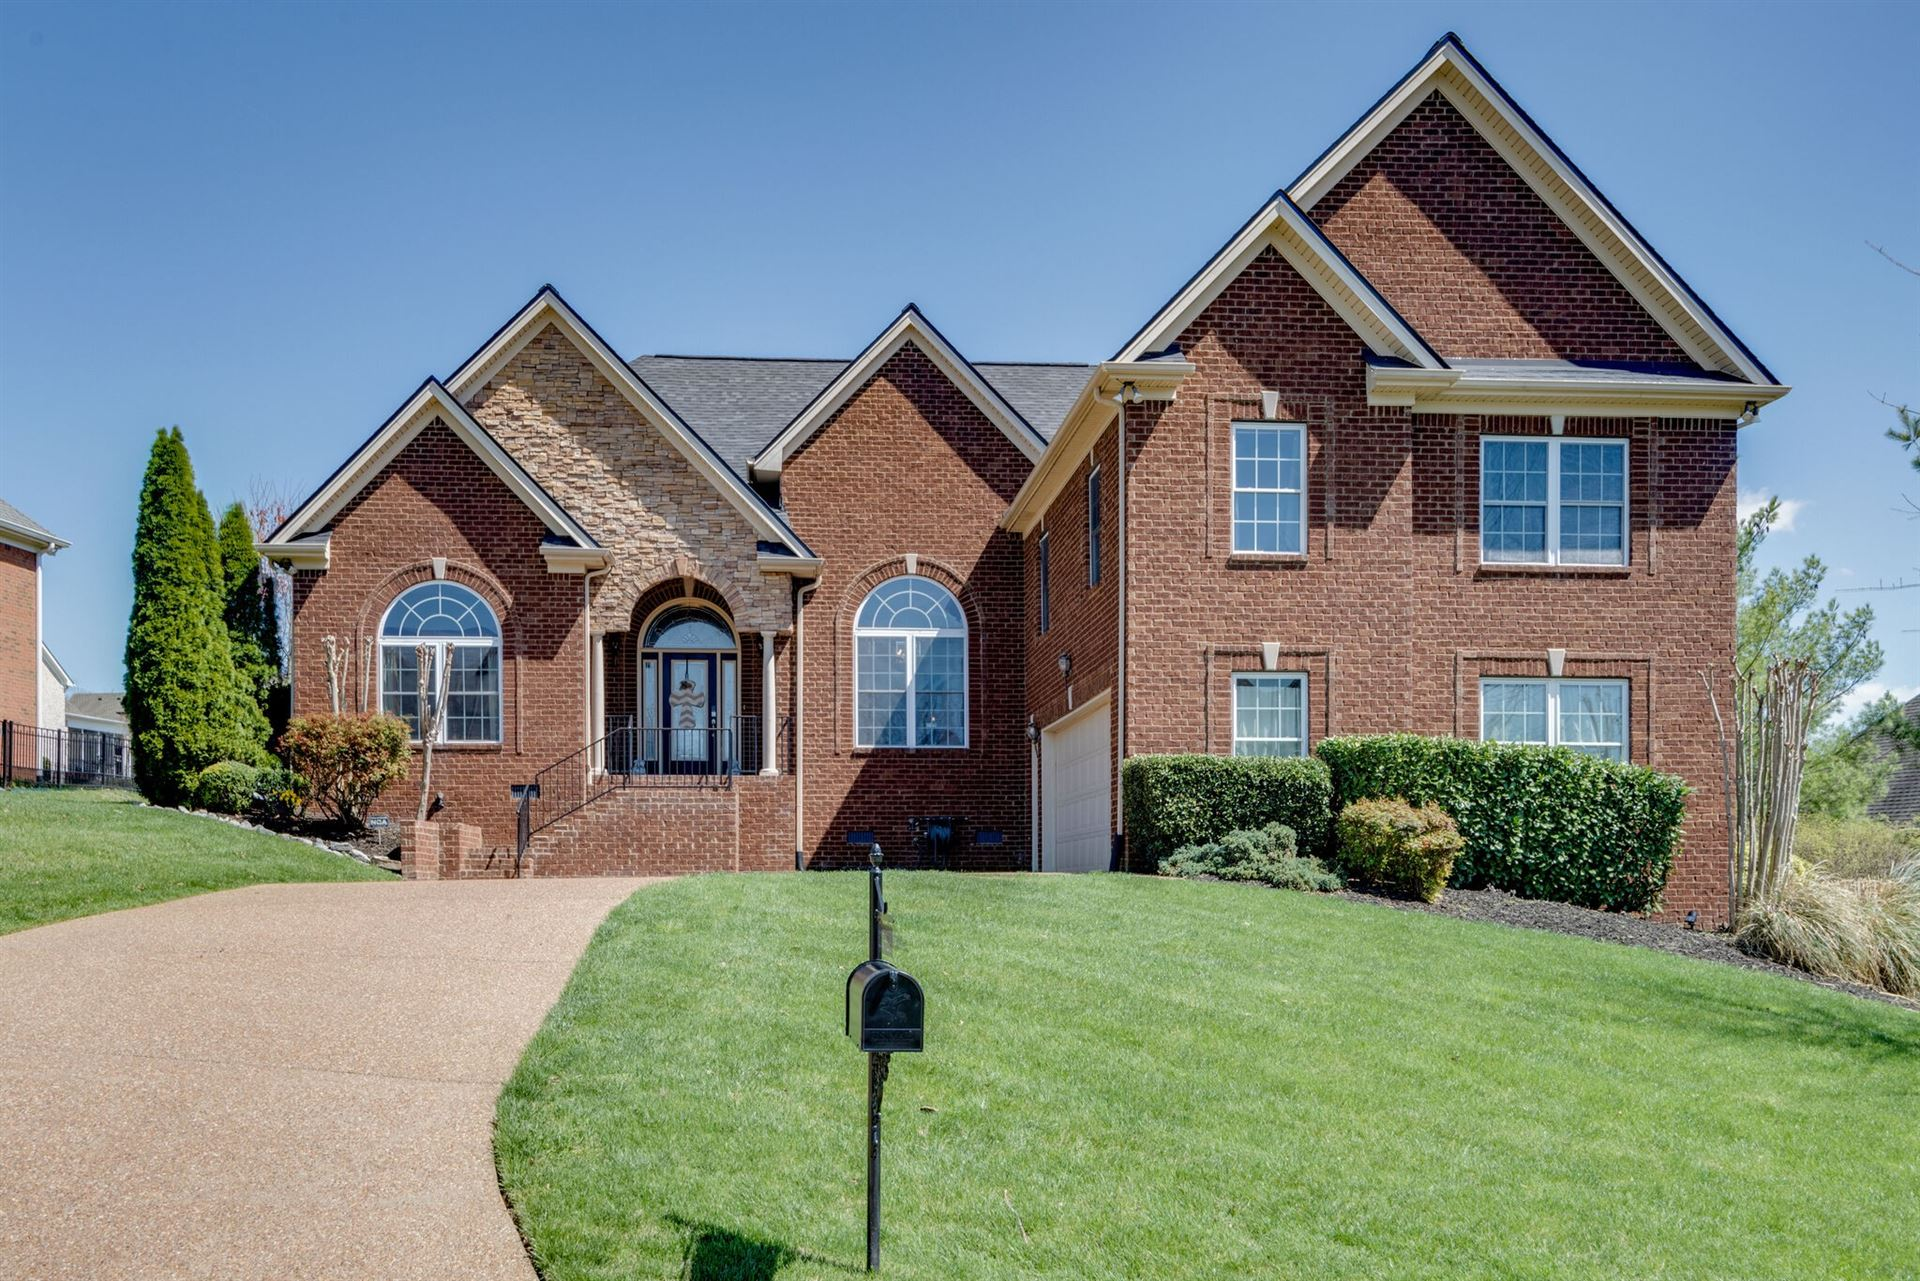 602 Northfield Ln, Brentwood, TN 37027 - MLS#: 2241501